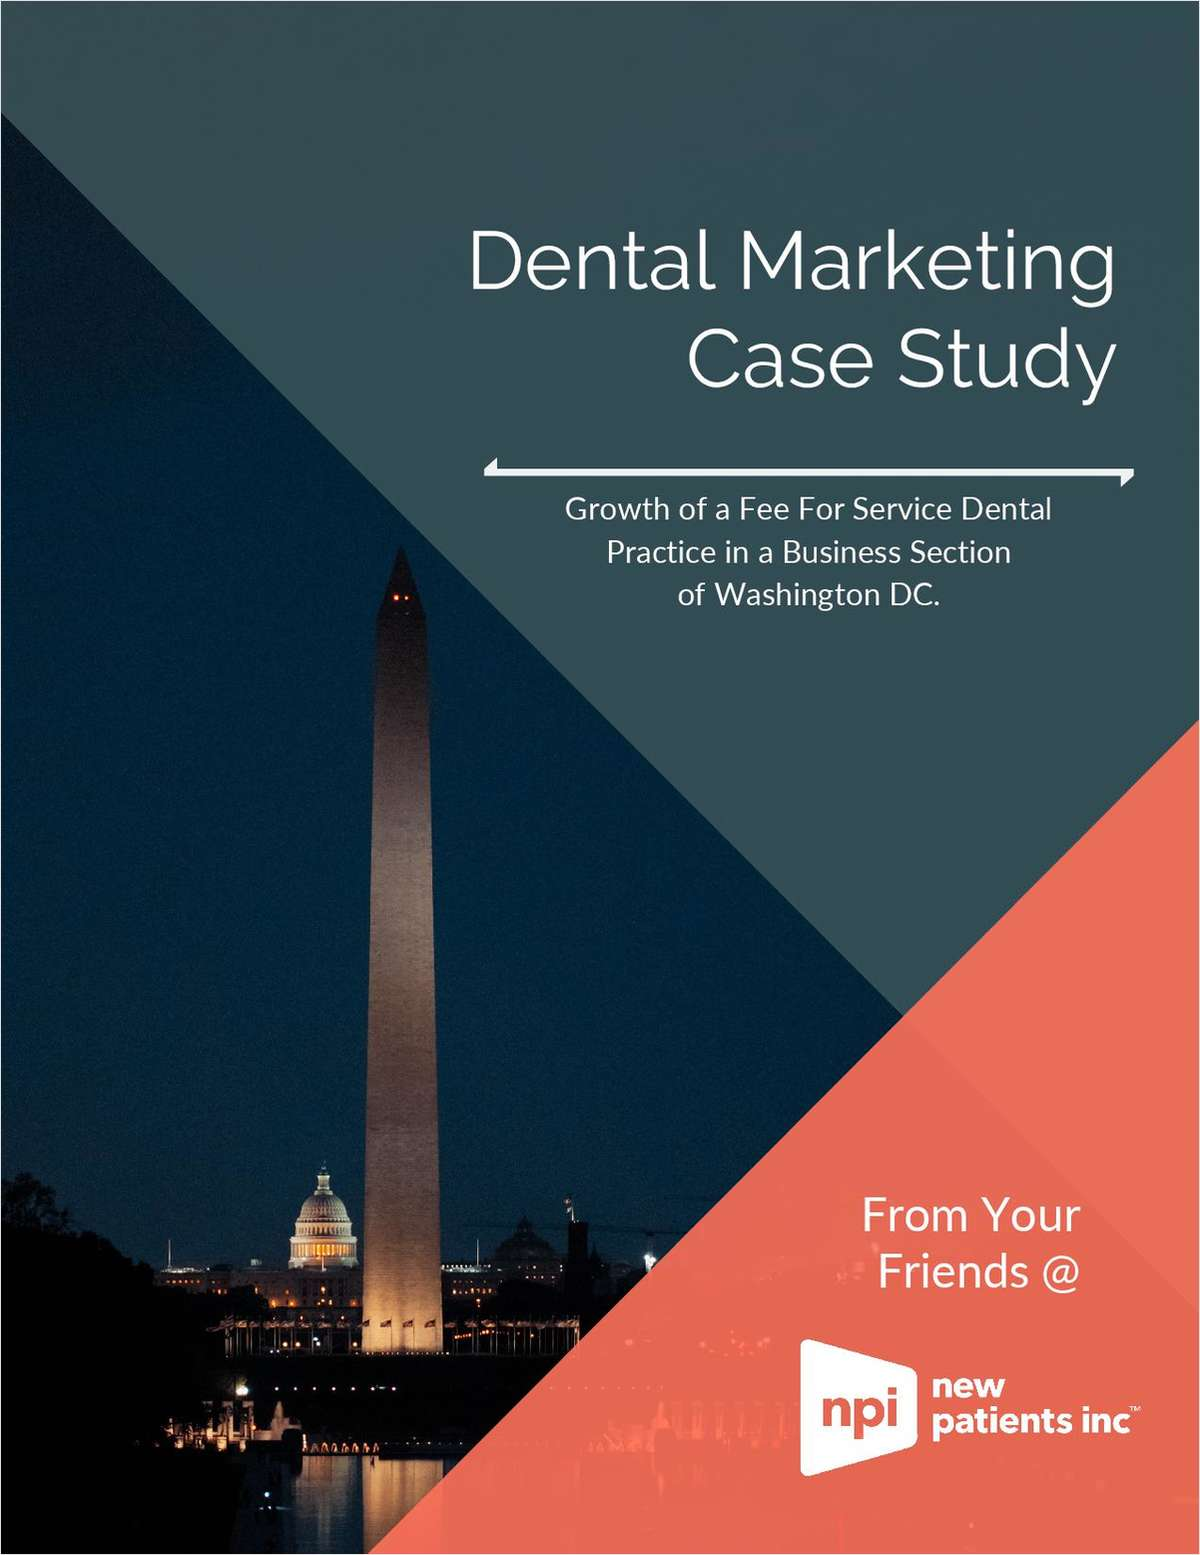 Growth of a Fee For Service Dental Practice in a Business Section of Washington DC